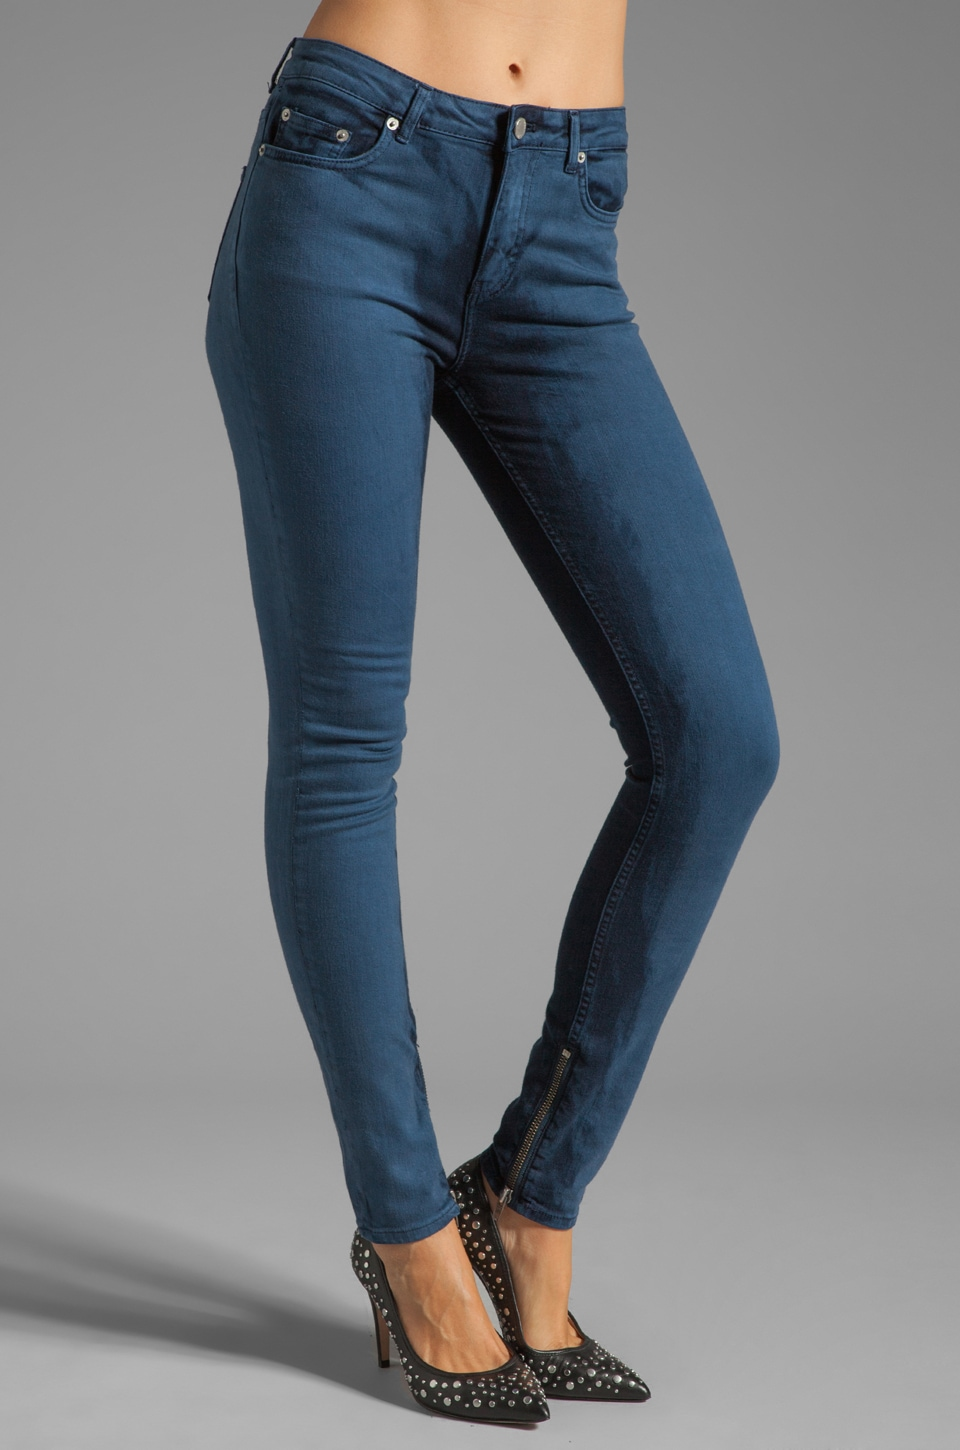 BLK DNM Jeans 4 in Kaos Bleach Blue